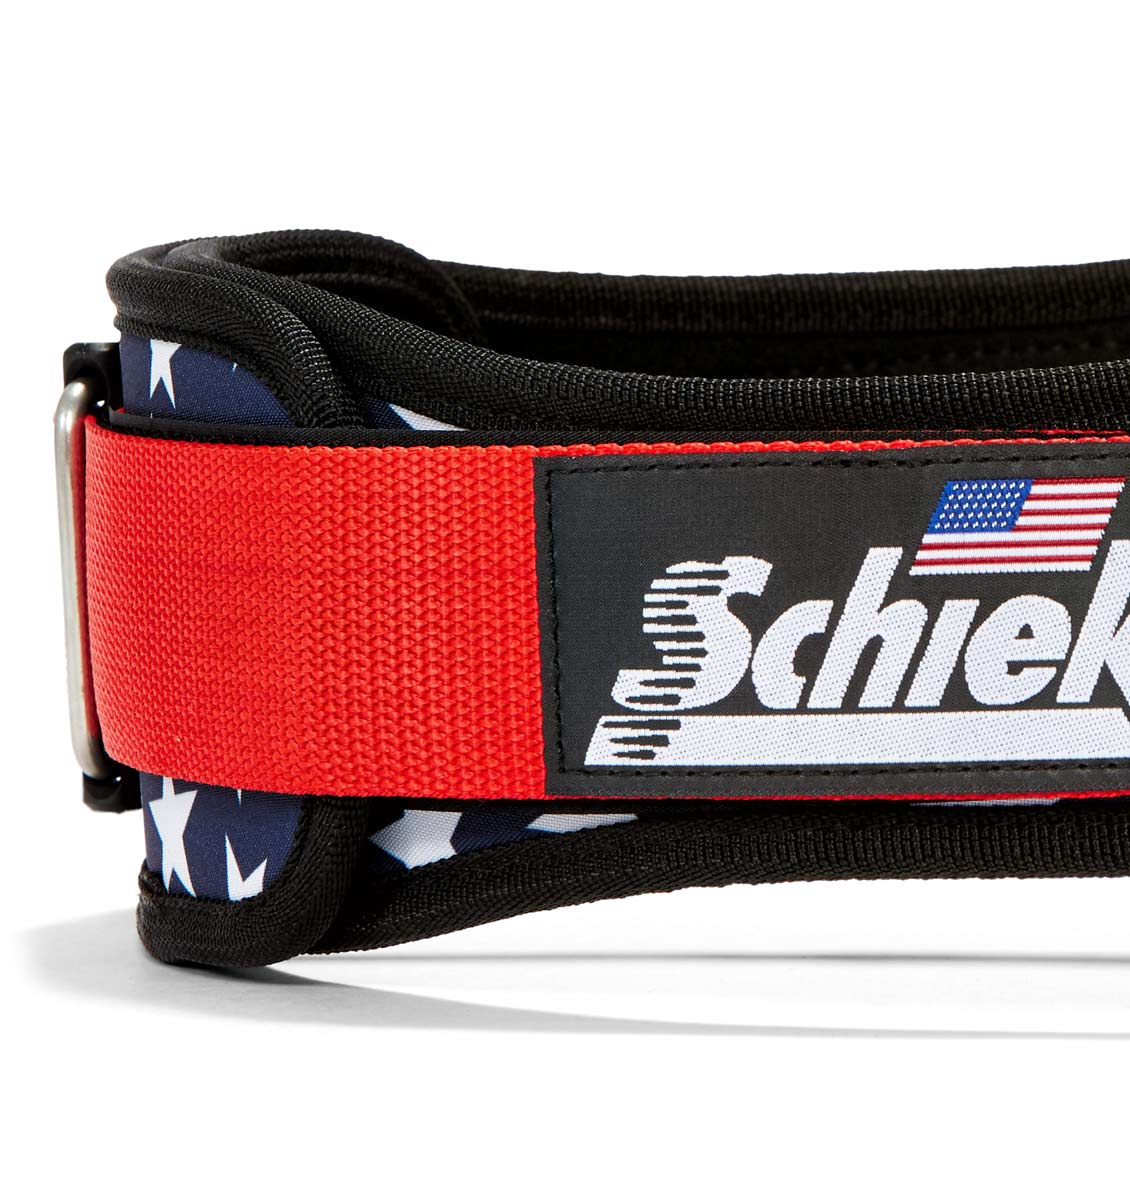 2004 Stars n Stripes Schiek Contour Weight Lifting Belt Stars and Stripes Side Close Up